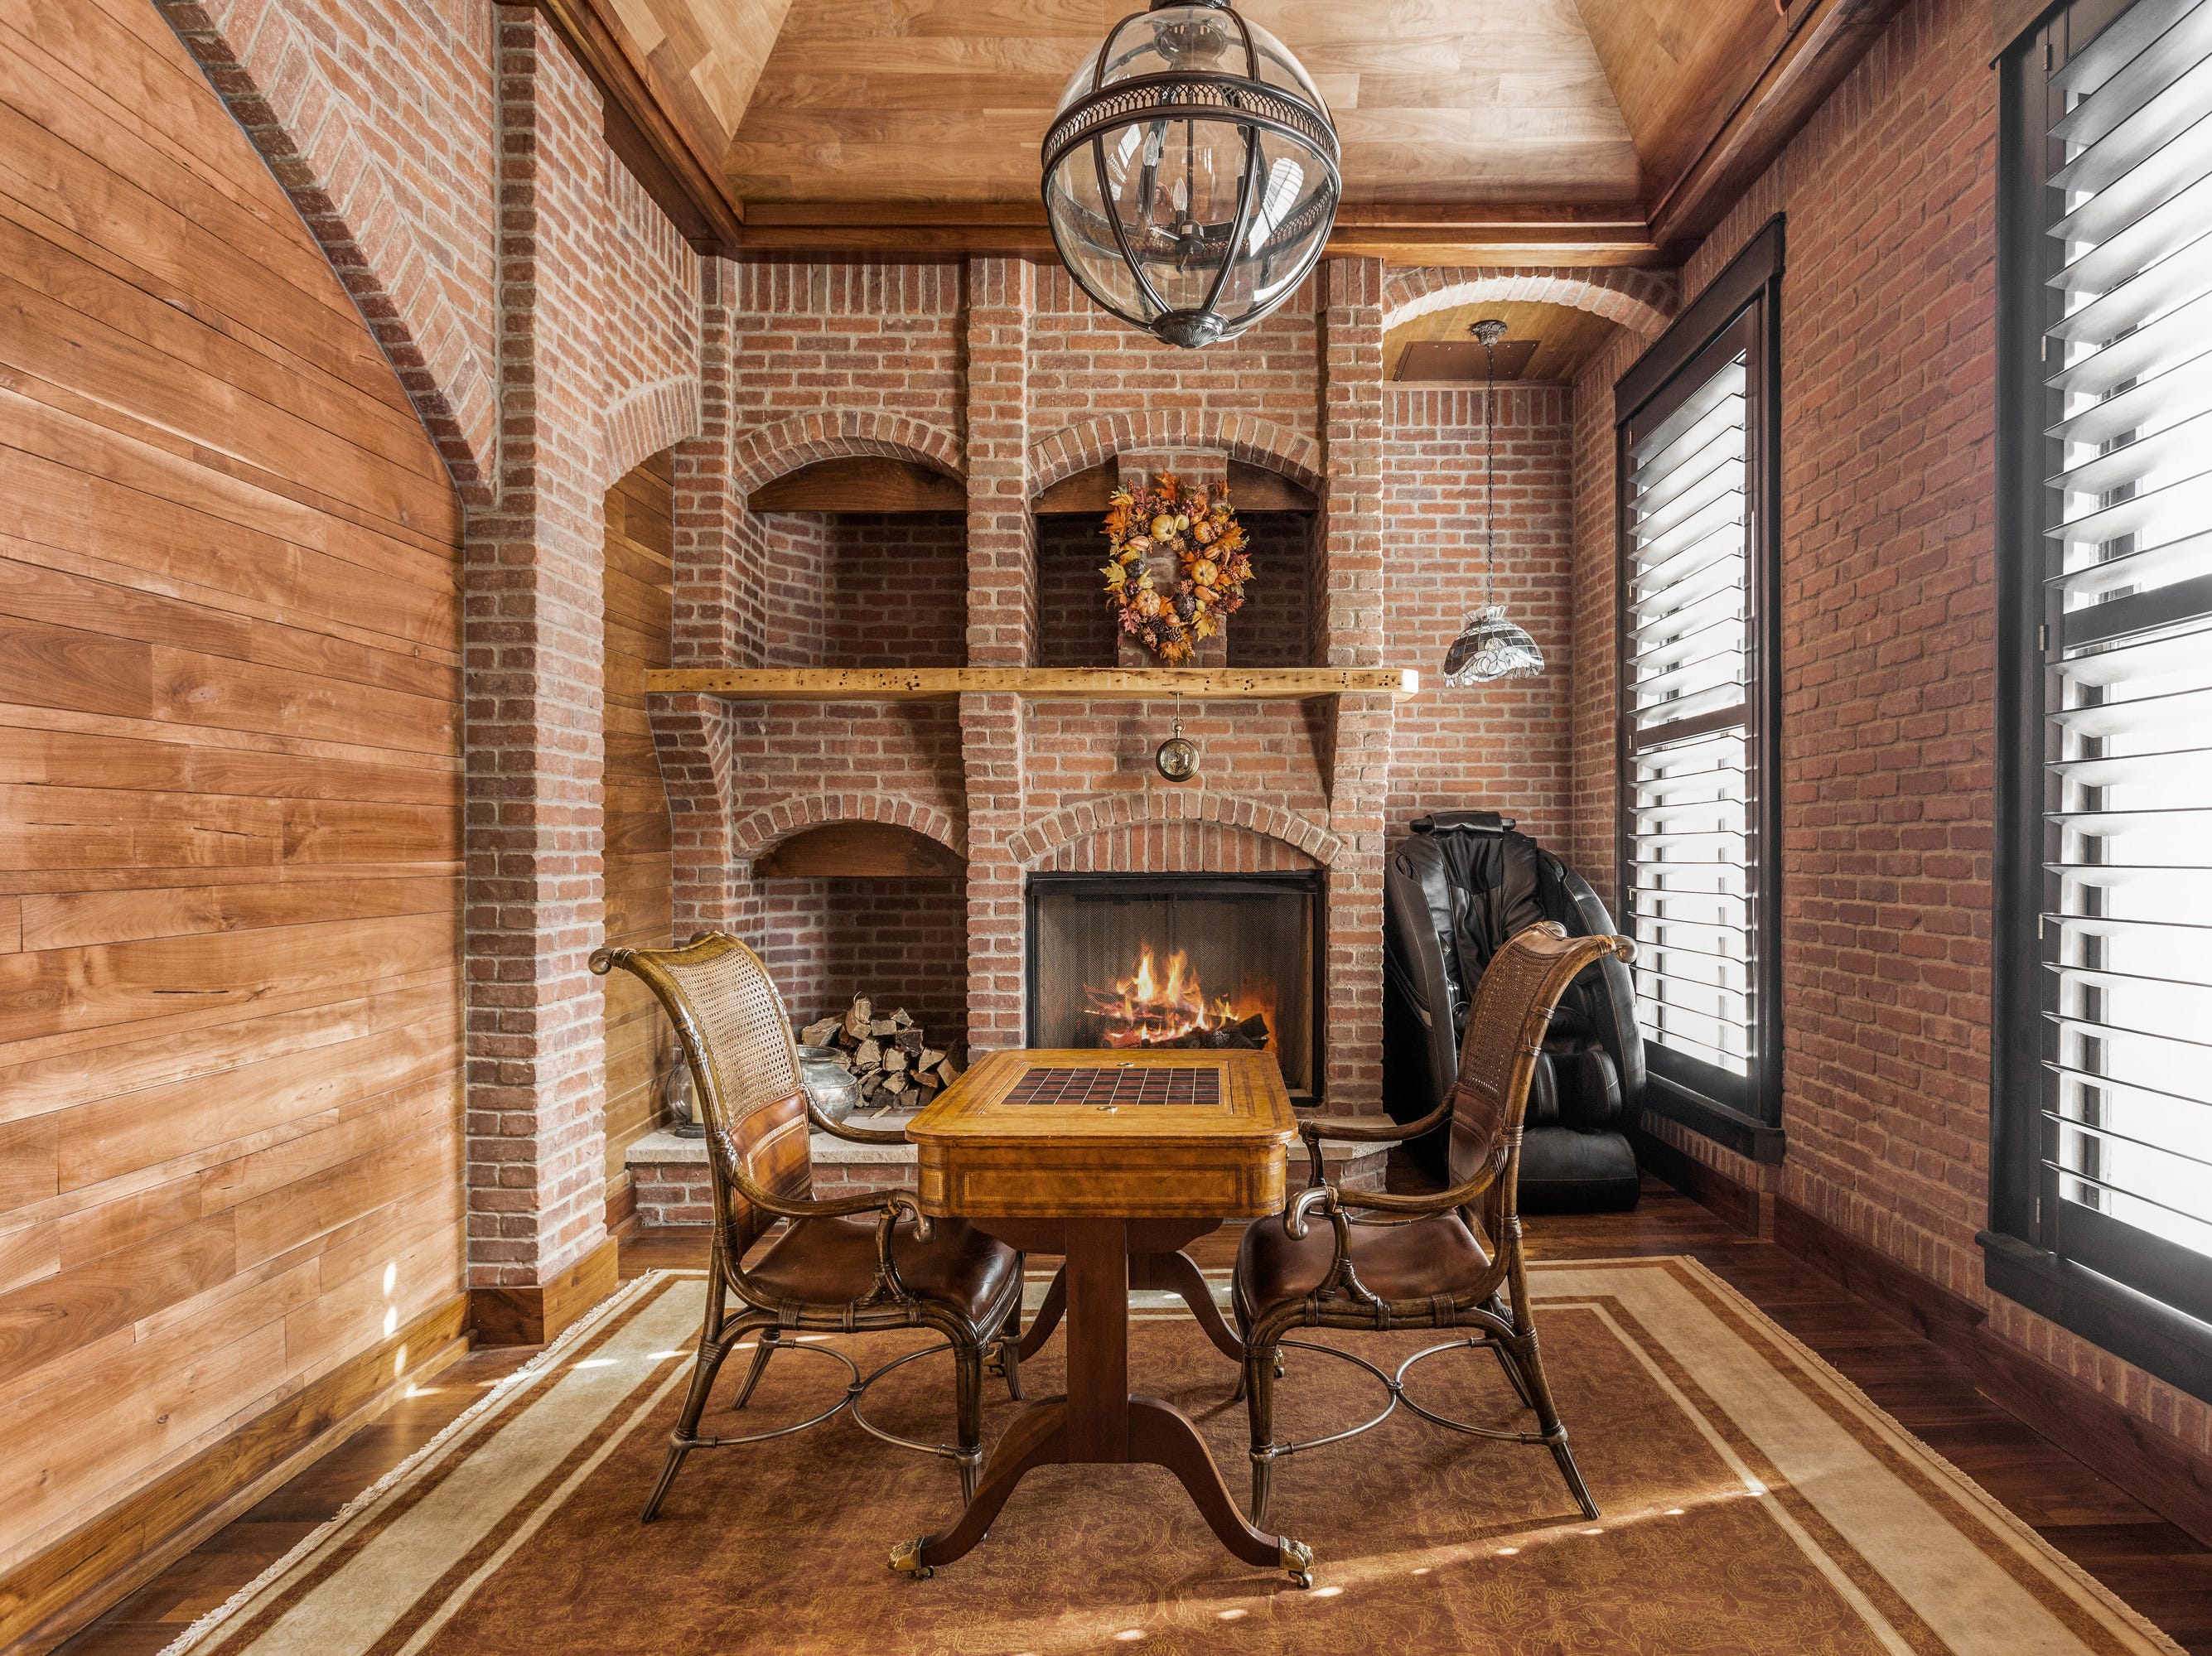 Where possible, the current owners went for a historic feel with exposed brick and wood.